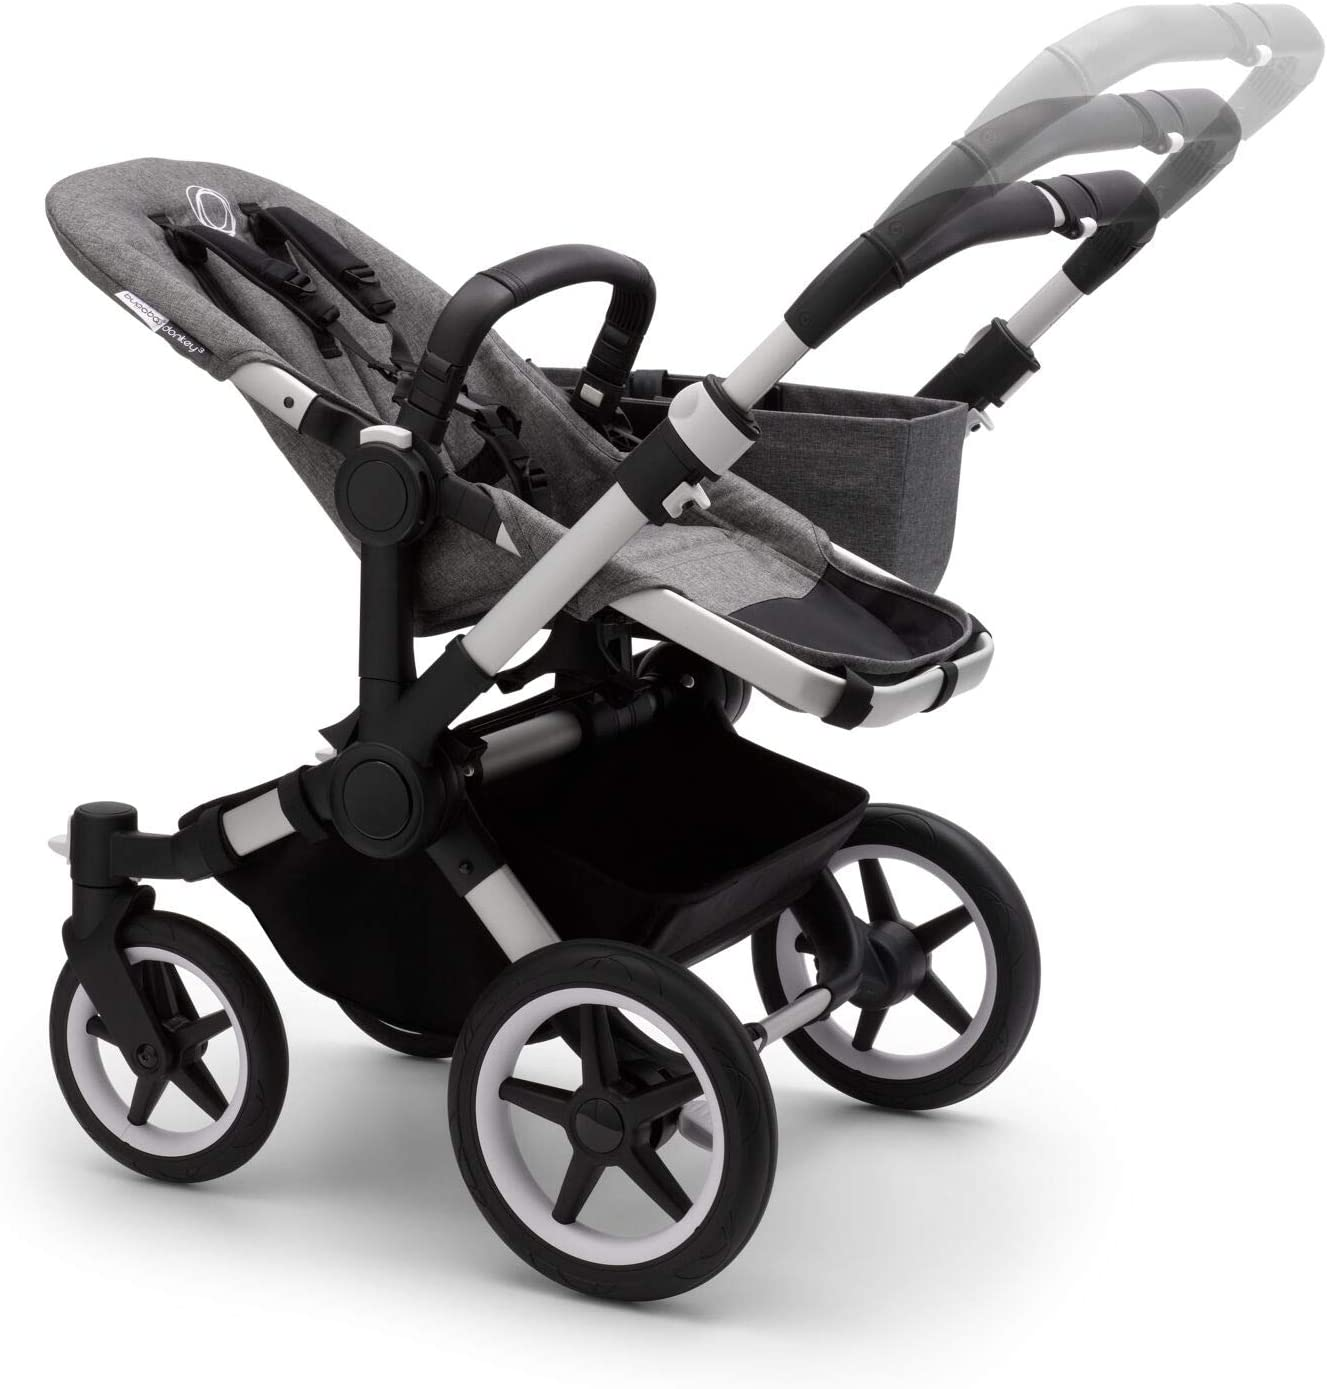 converts Single into Double Side by Side pram and Pushchair Bugaboo Donkey 3 Duo Extention Set Complete Foldable Lightweight Stroller with Black Sun Canopy and Black Chassis